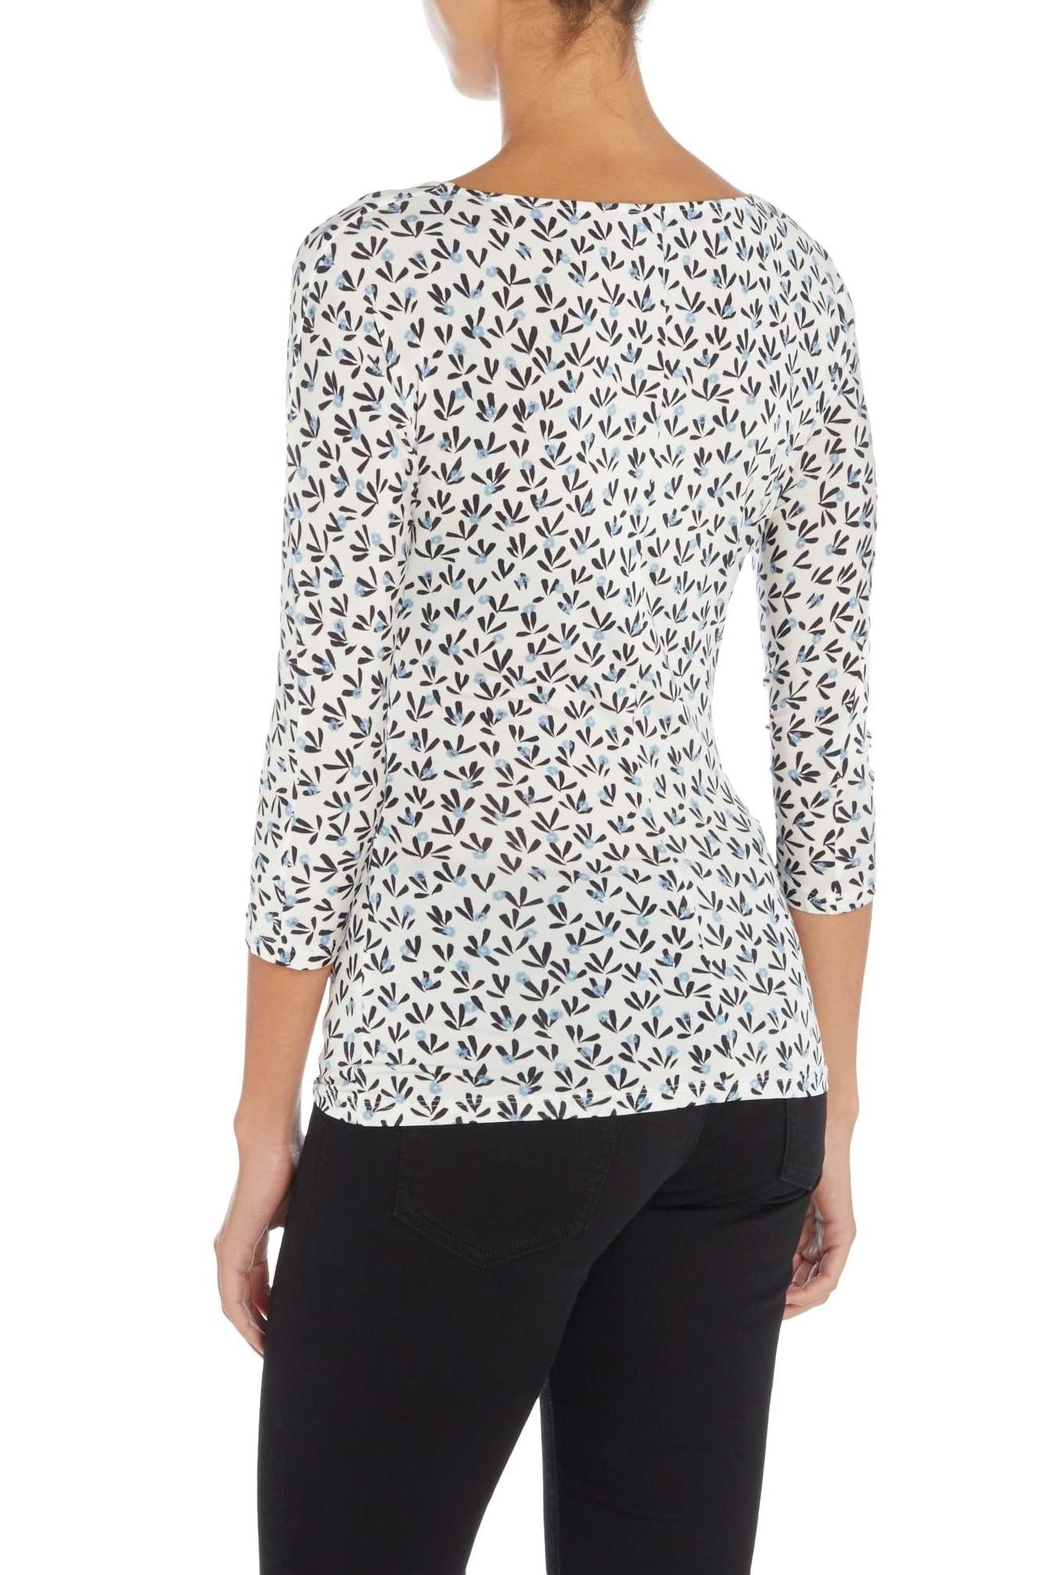 Max Mara Jersey Floral Top - Front Full Image